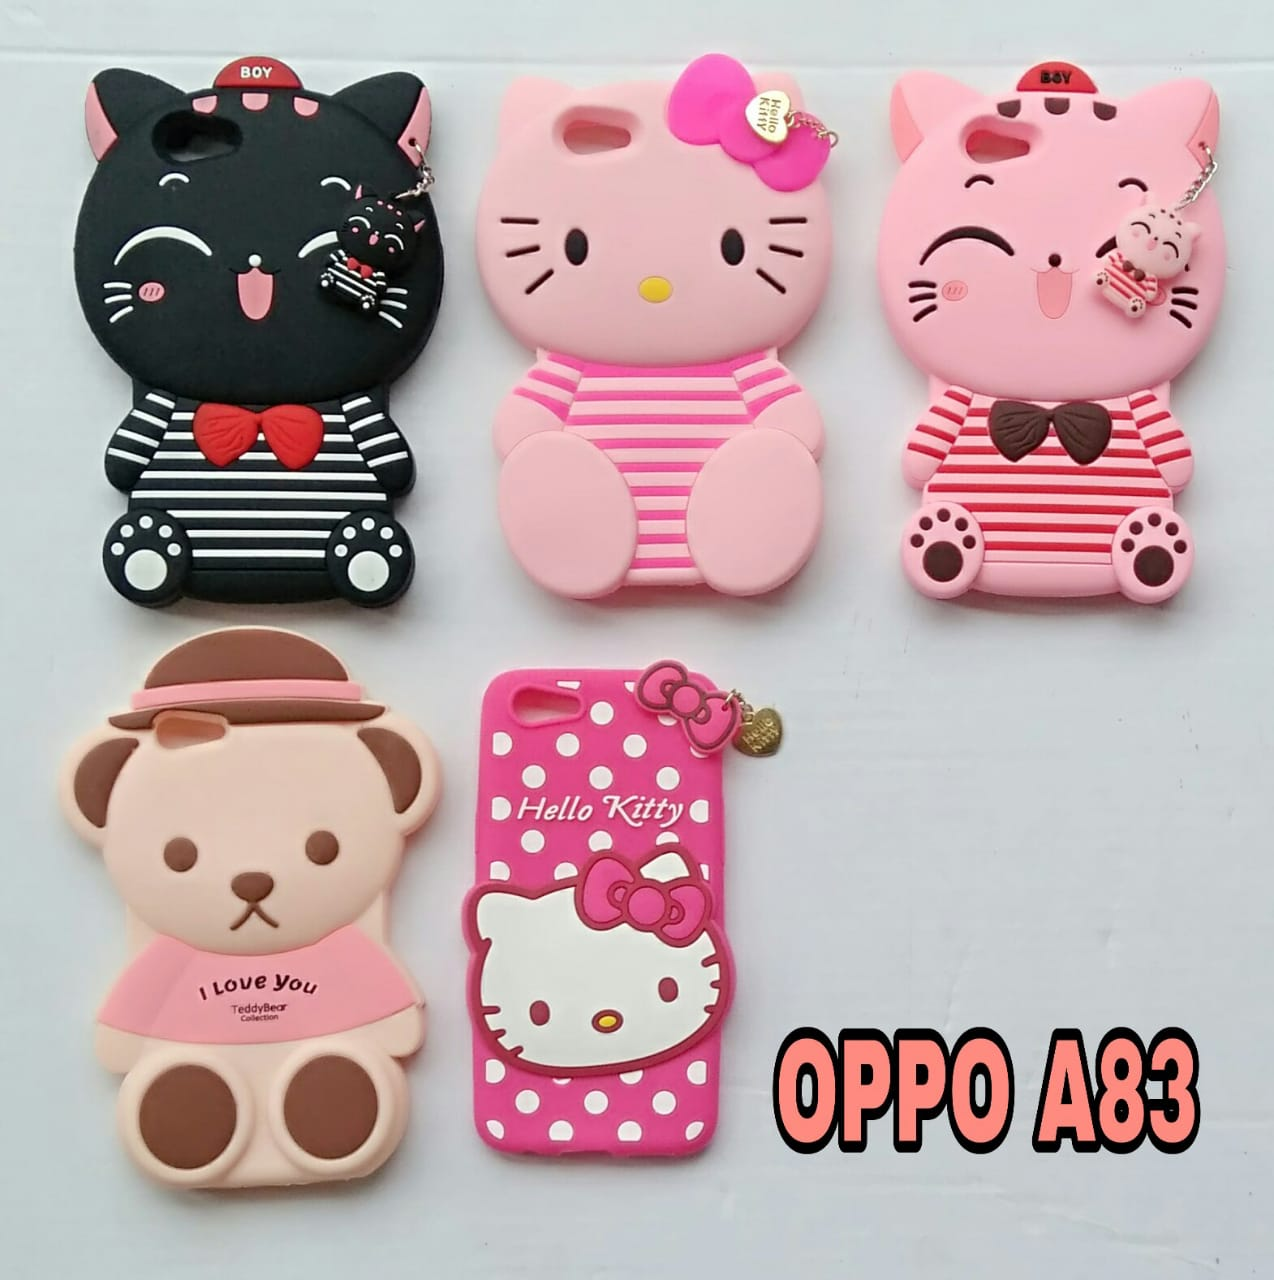 promo code ca13b 3c825 Softcase 3D For OPPO A83 // Case Boneka Lucu Character Cartoon 4D  penjipeaceOLS